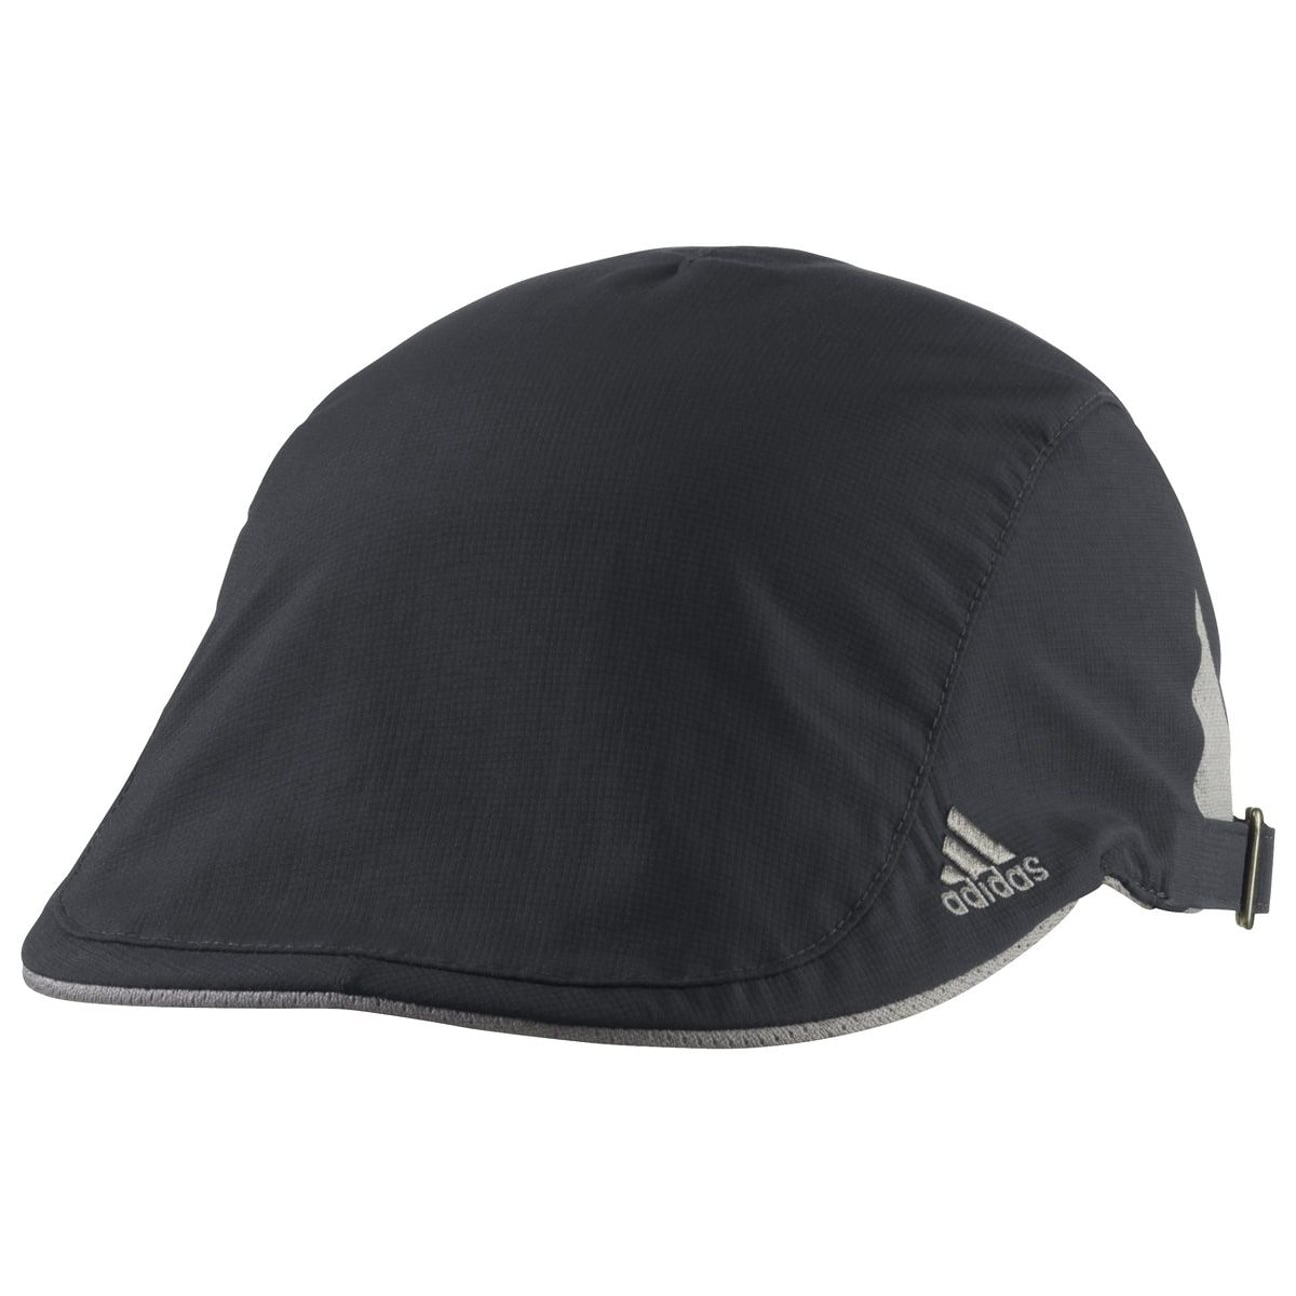 Gatsby Cap by adidas - anthracite 1 13b15311954